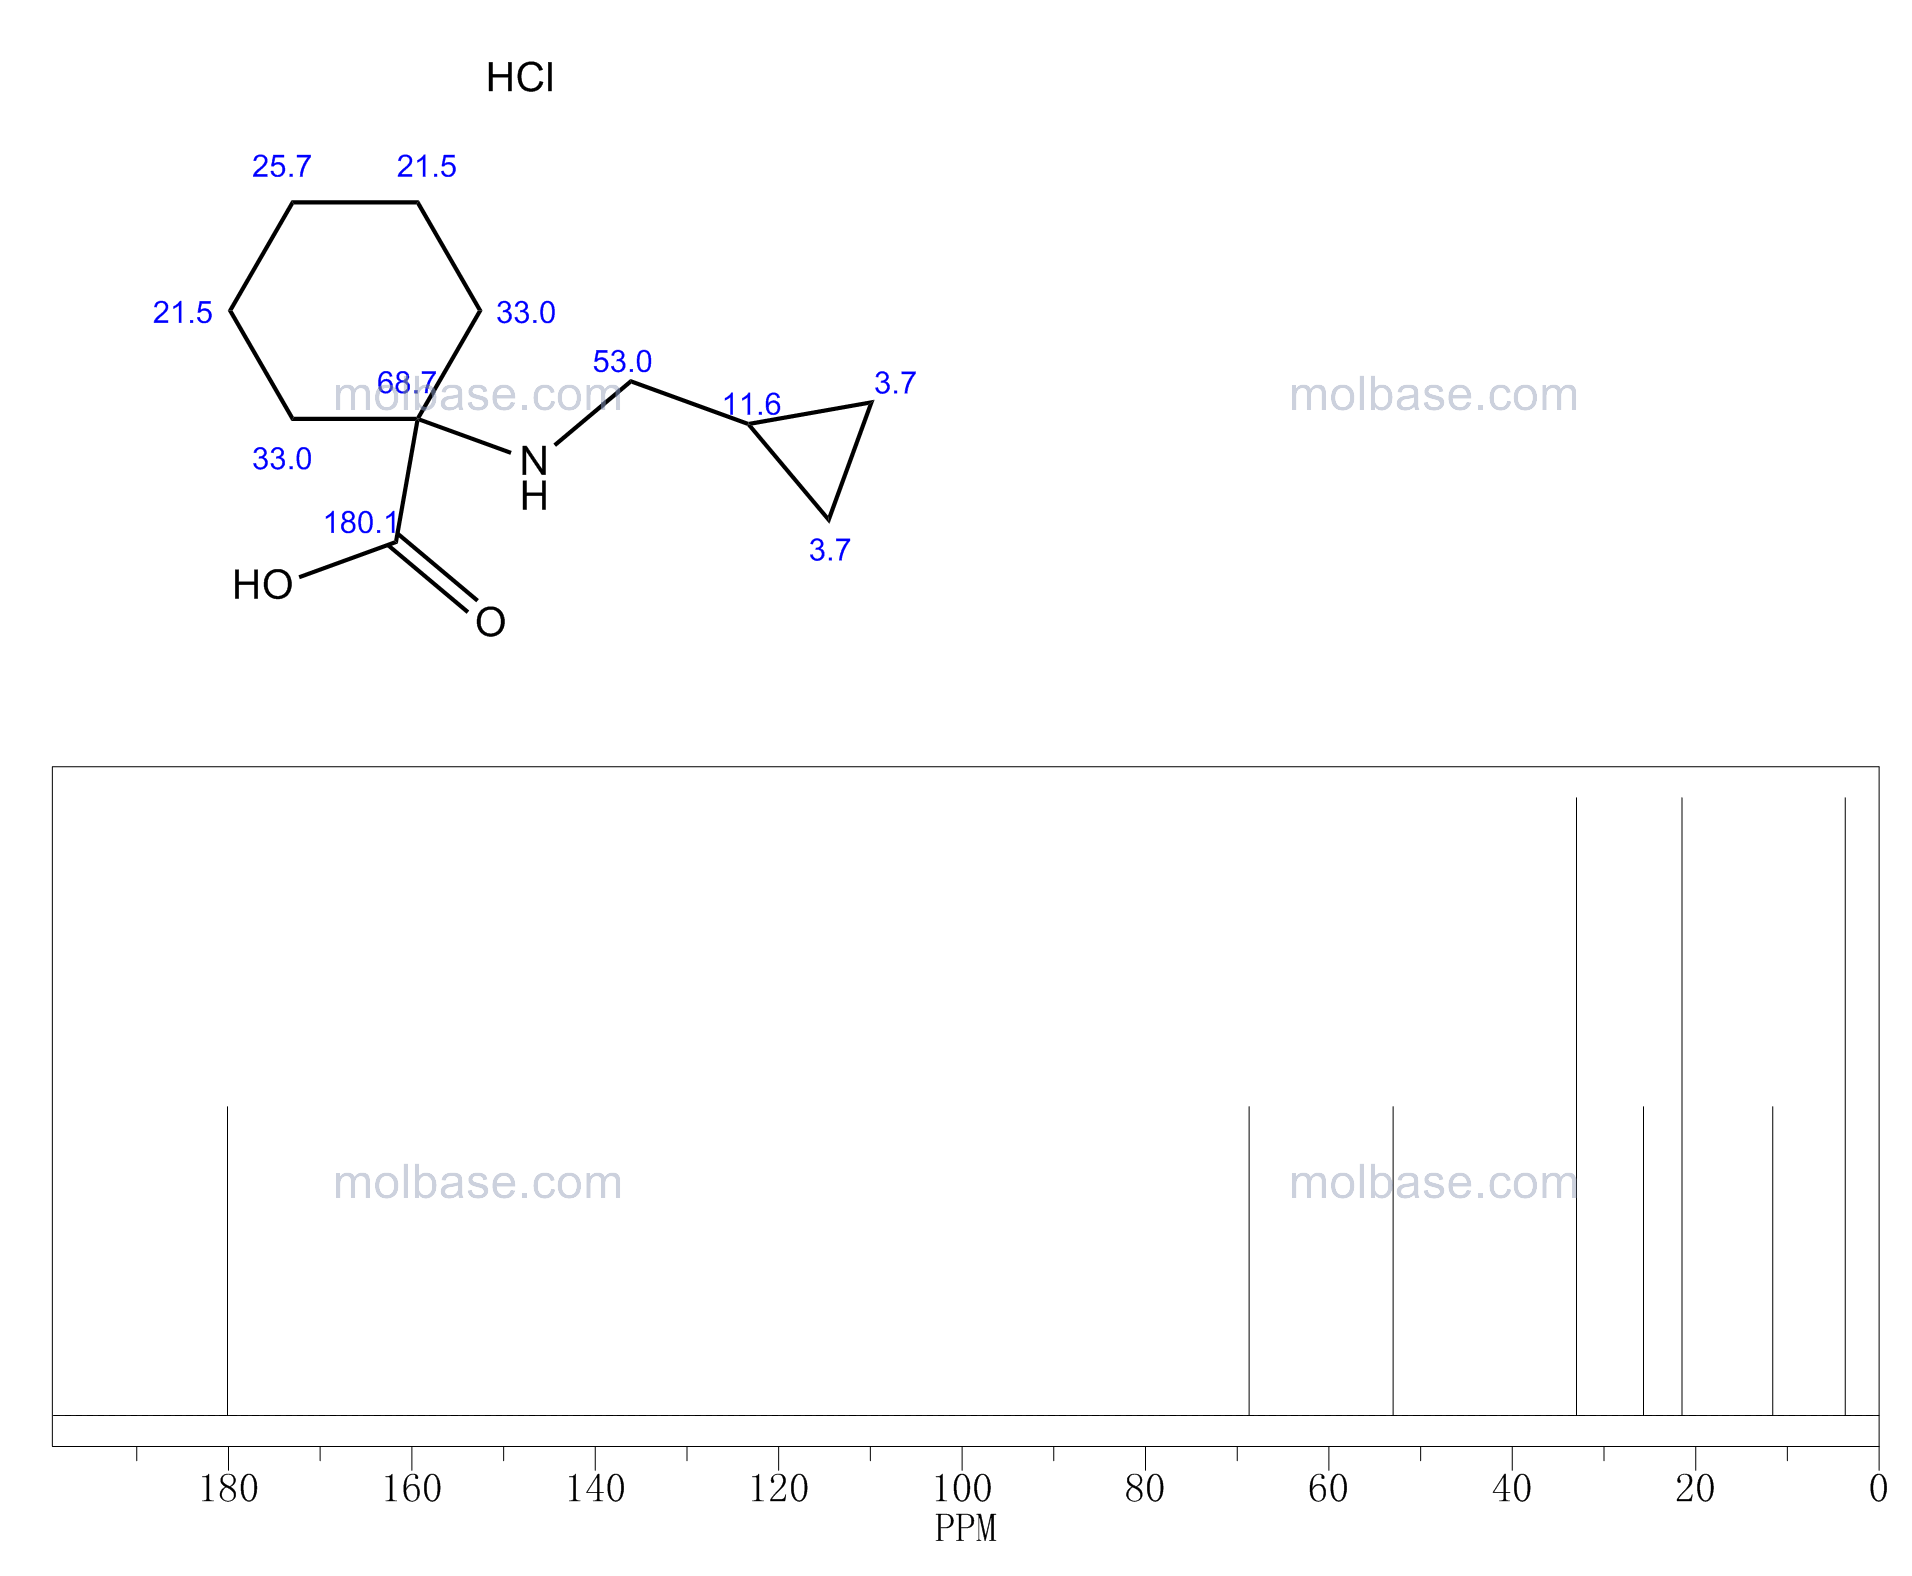 1-(CYCLOPROPYLMETHYL-AMINO)-CYCLOHEXANECARBOXYLIC ACID HYDROCHLORIDE NMR spectra analysis, Chemical CAS NO. 939760-83-5 NMR spectral analysis, 1-(CYCLOPROPYLMETHYL-AMINO)-CYCLOHEXANECARBOXYLIC ACID HYDROCHLORIDE C-NMR spectrum